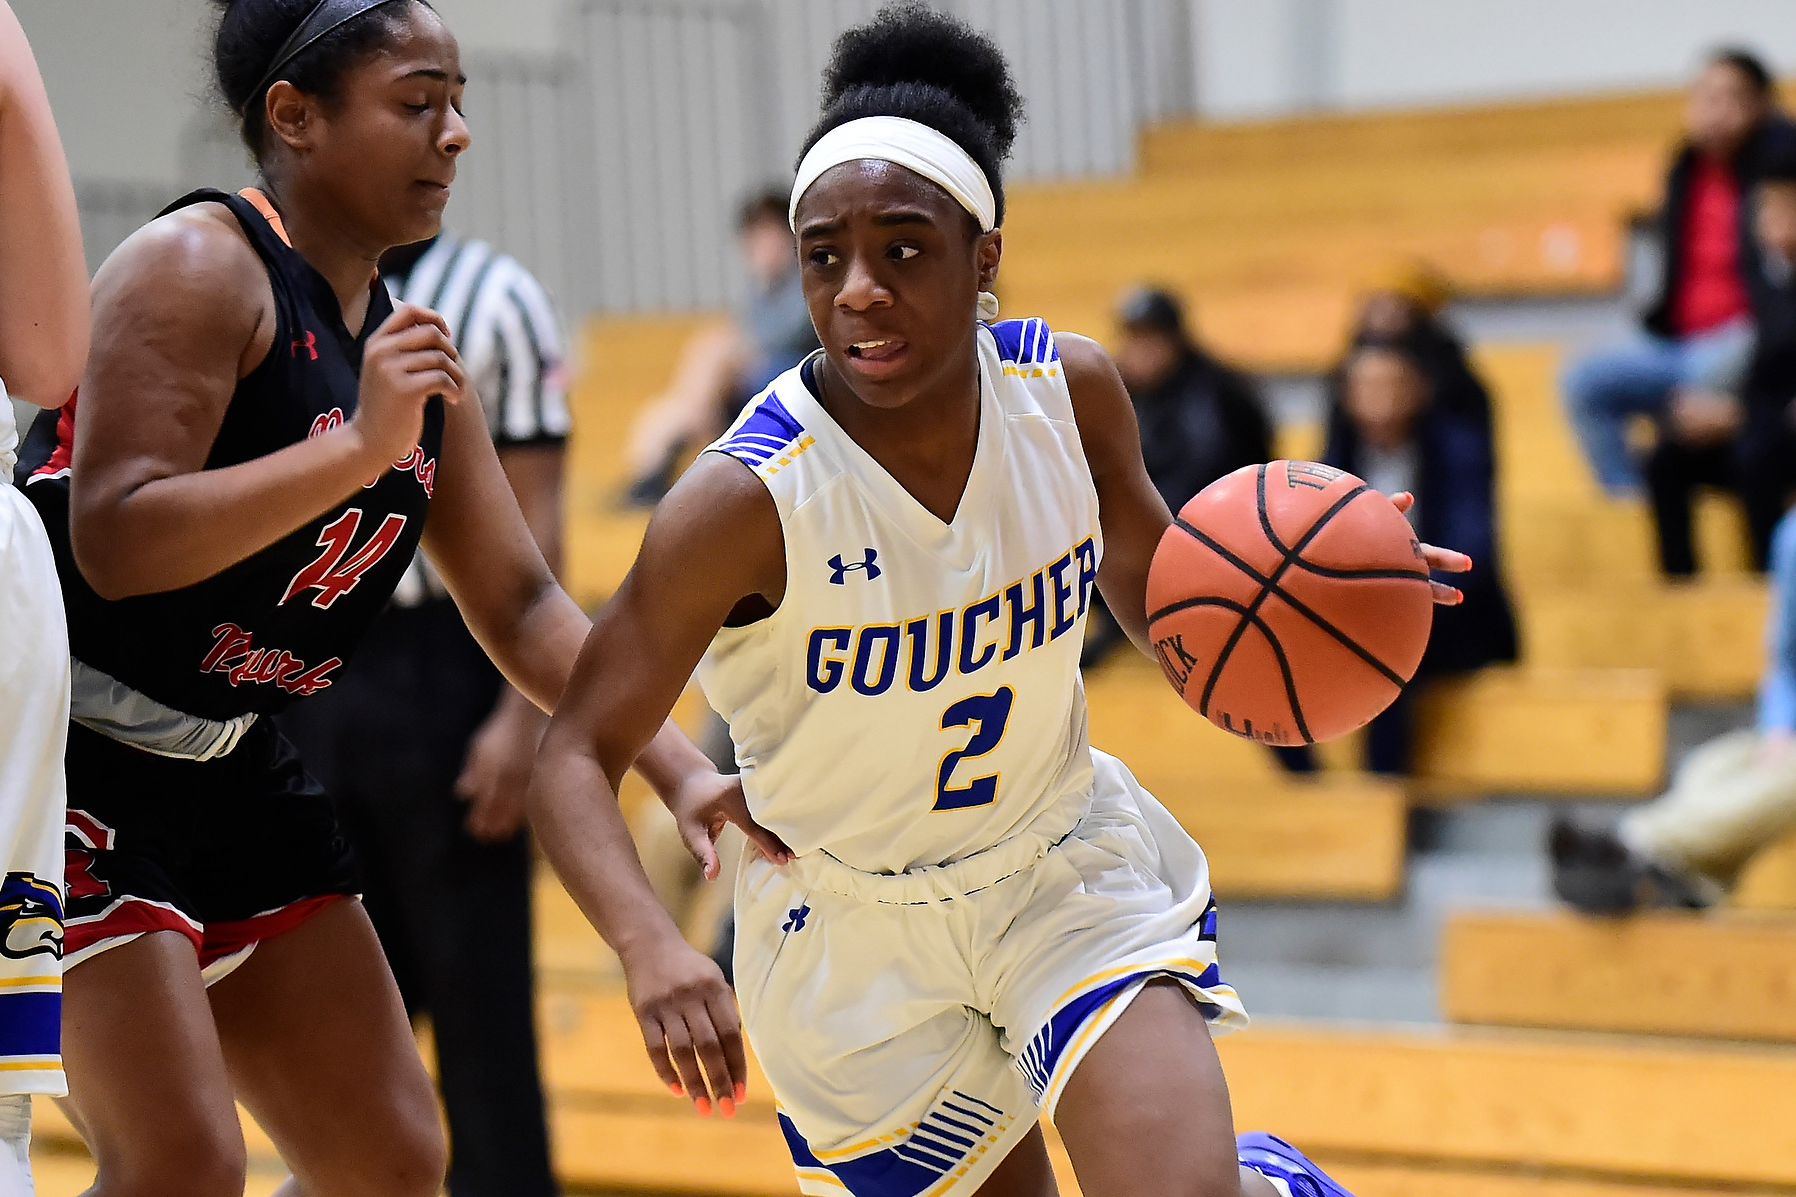 Women's Basketball Dealt a Tough Conference Loss by Susquehanna, 78-51